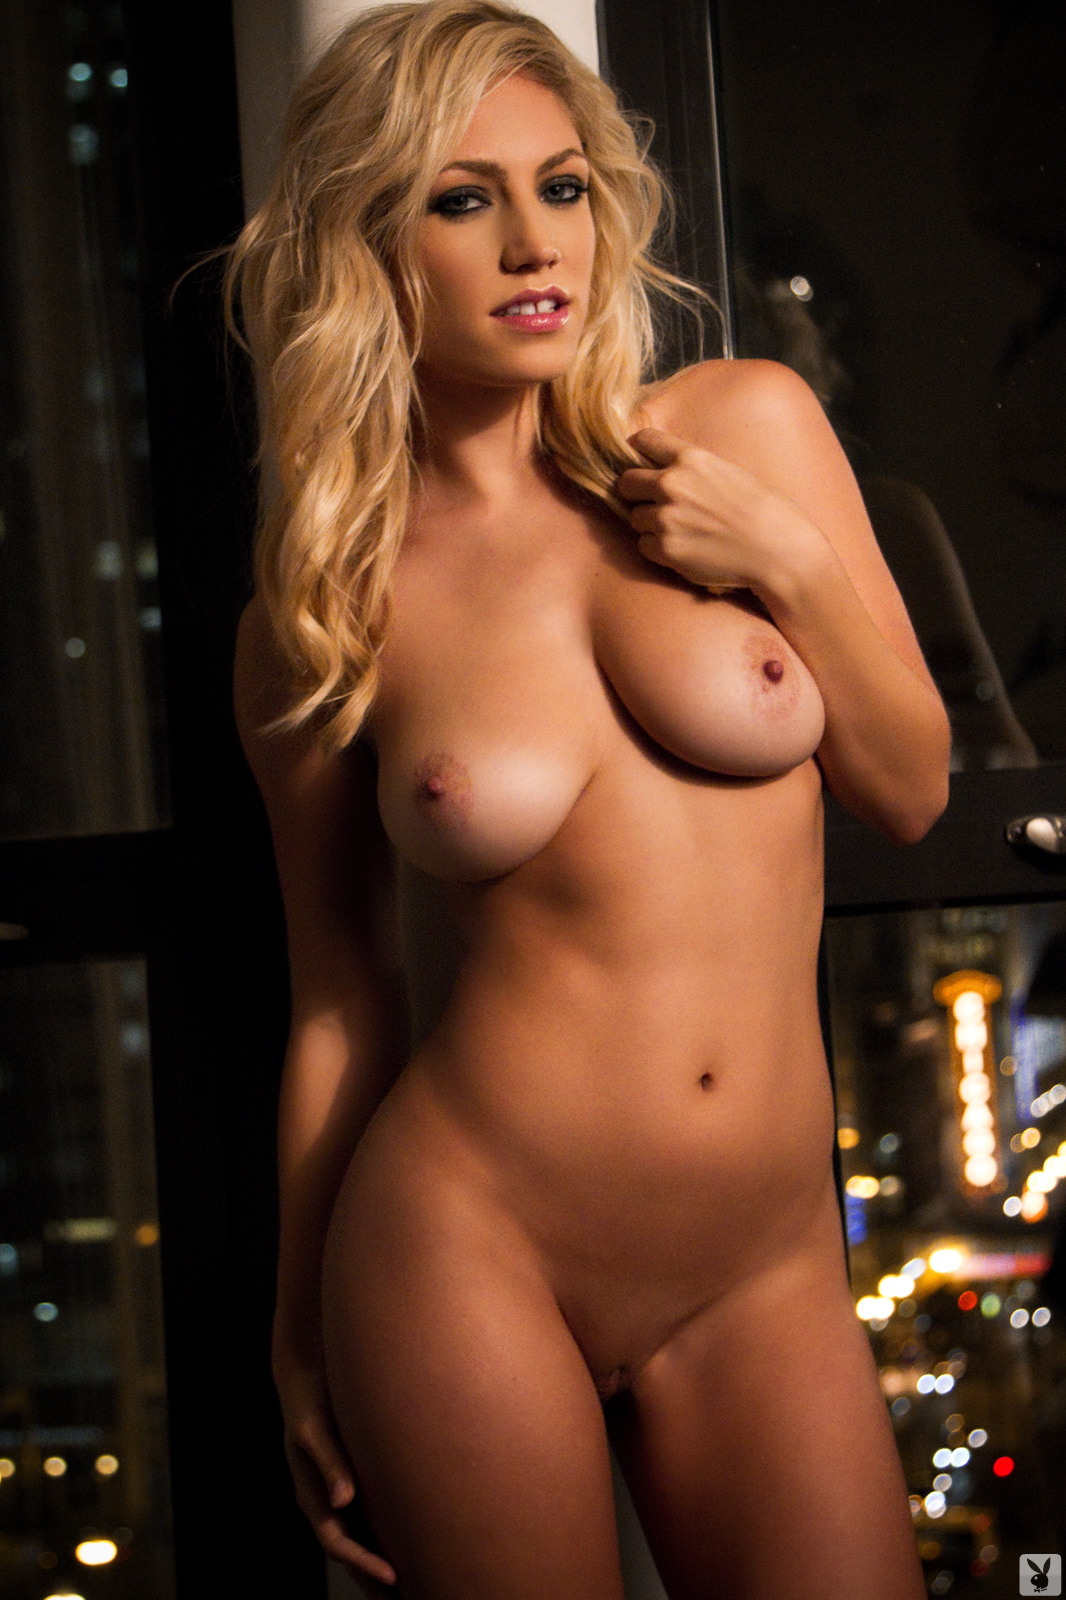 hot-ufc-ring-girl-nude-alma-wade-cosplay-nude